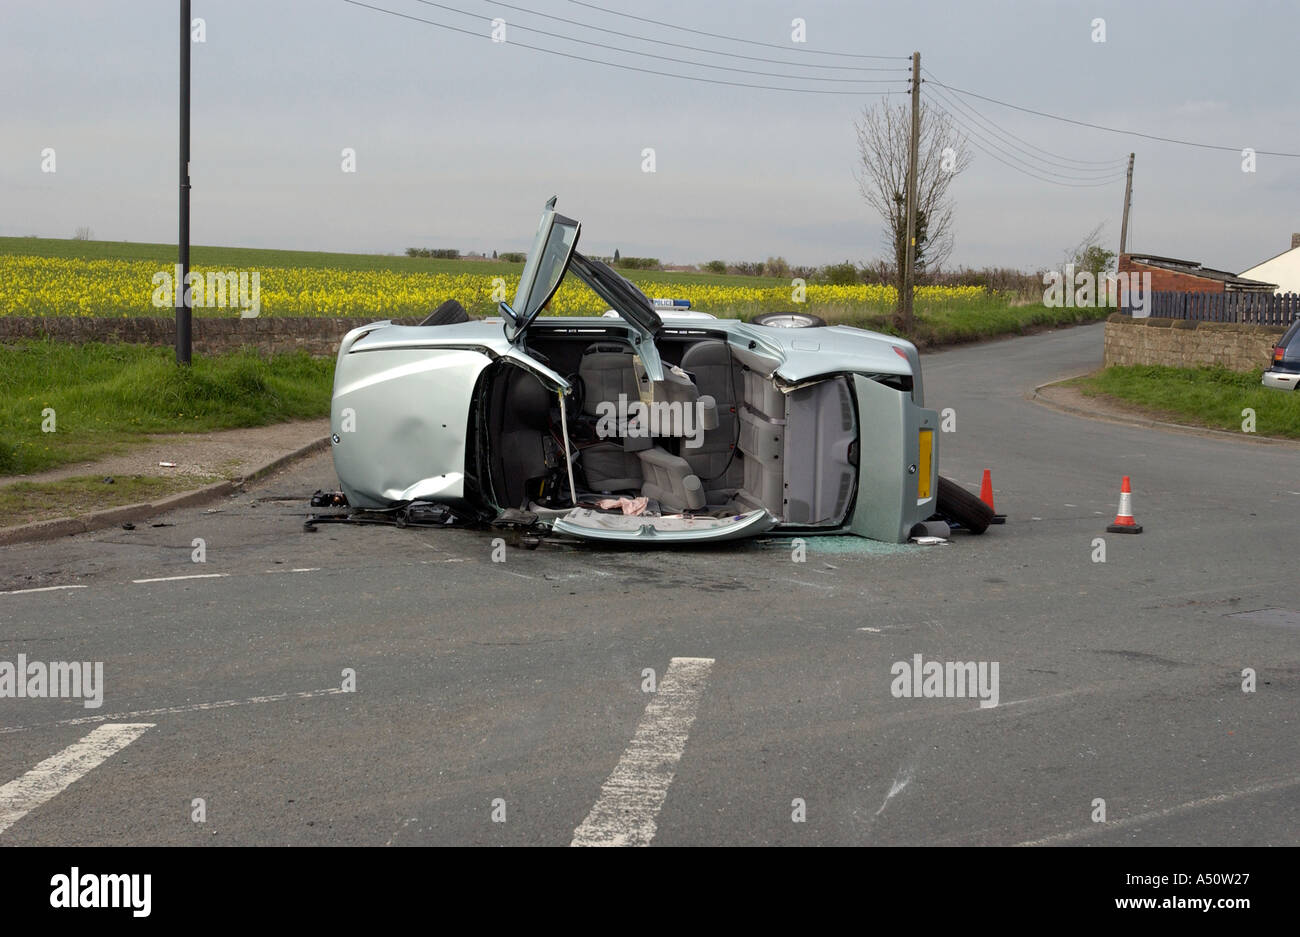 Bmw Car On Its Side With Its Roof Torn Off Following A Road